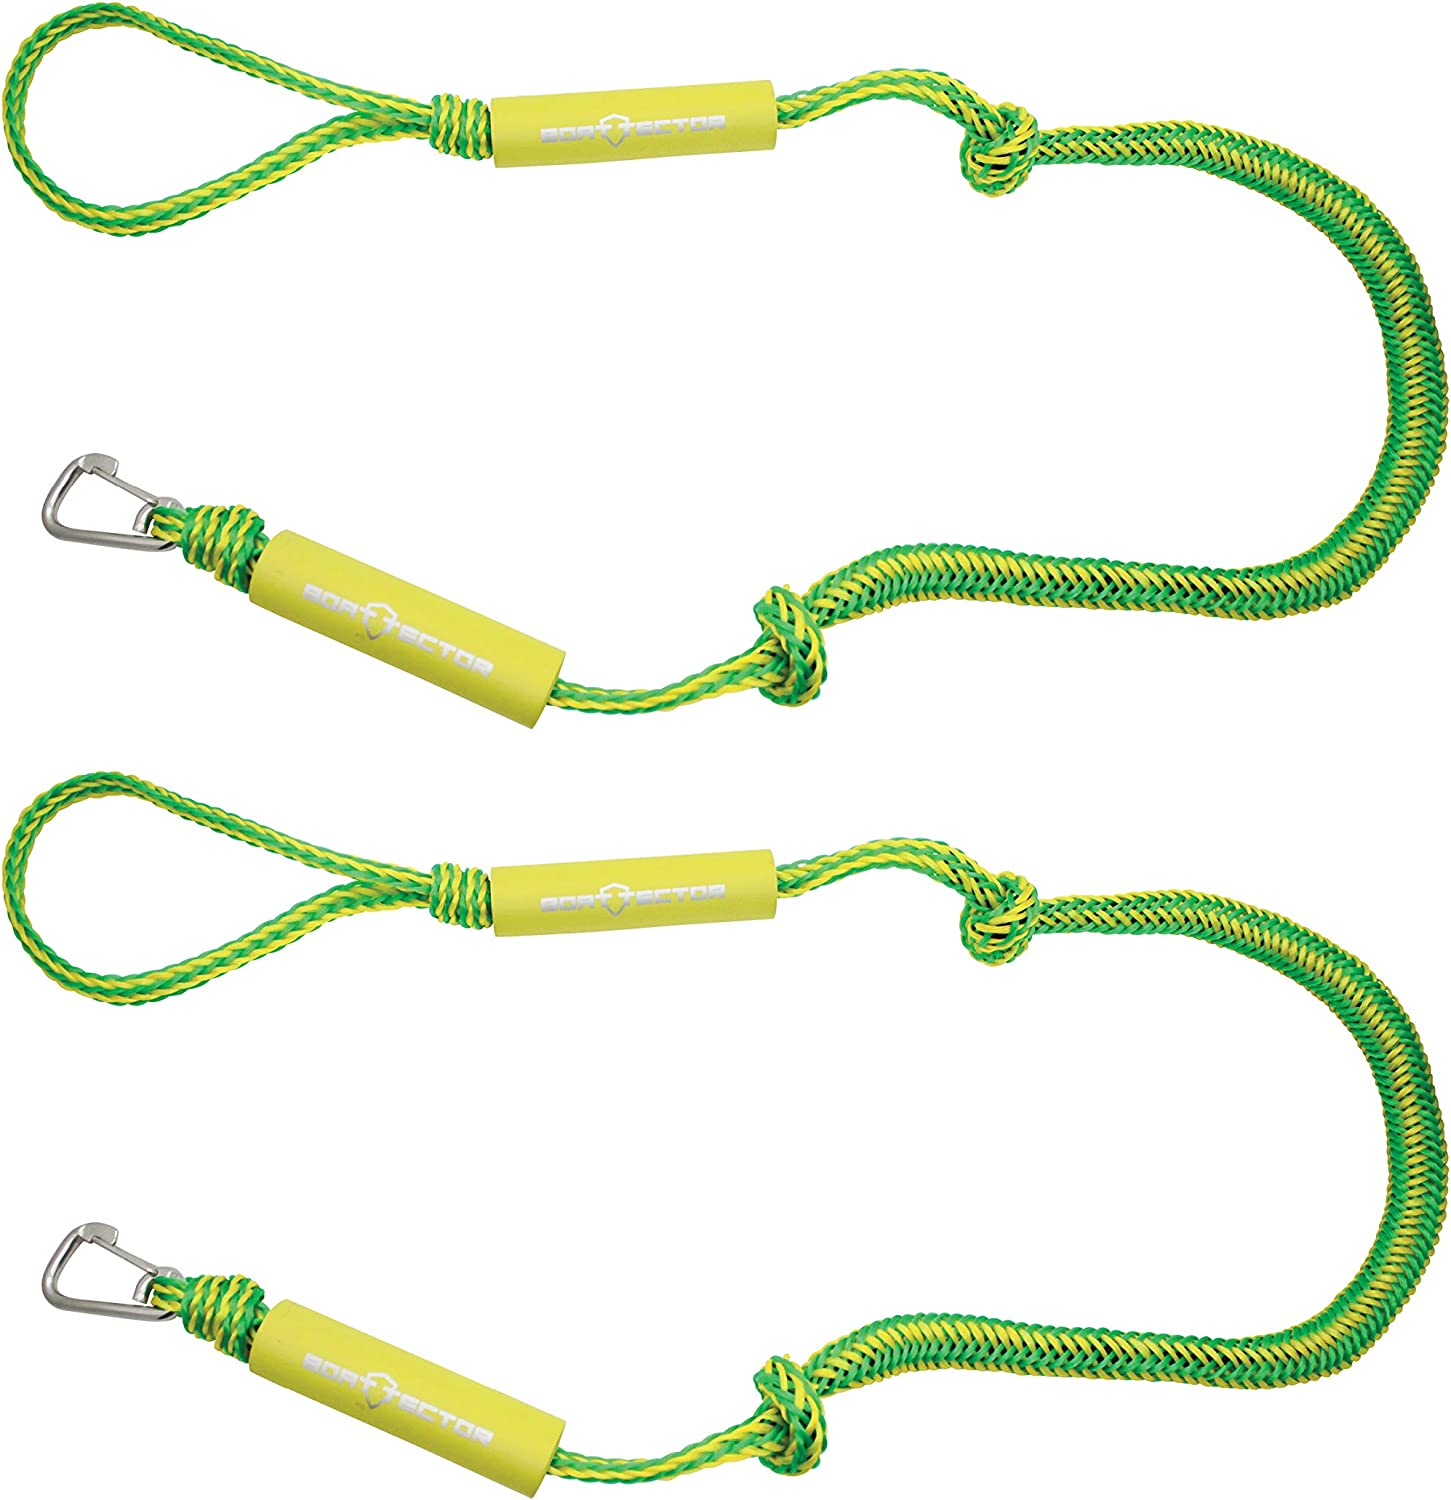 Extreme Max BoatTector PWC Dock Line Value 2-Pack with 7 and 14 Lengths